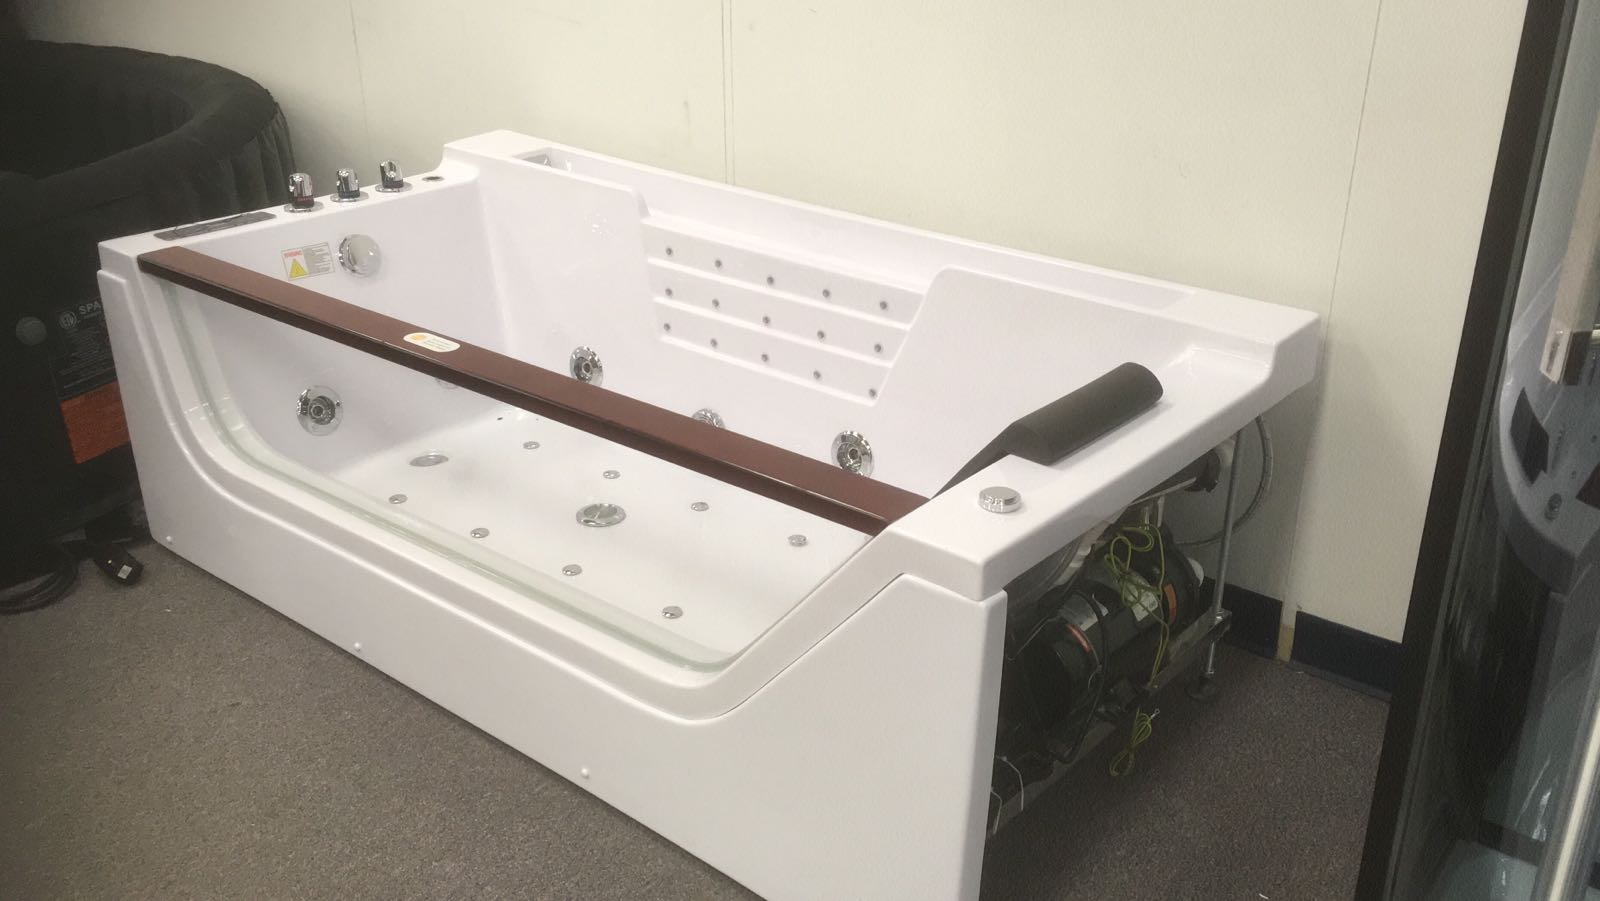 NEW LUXURY WHIRLPOOL JACUZZI BATHTUB HEATED MASSAGE TUB WATER ...